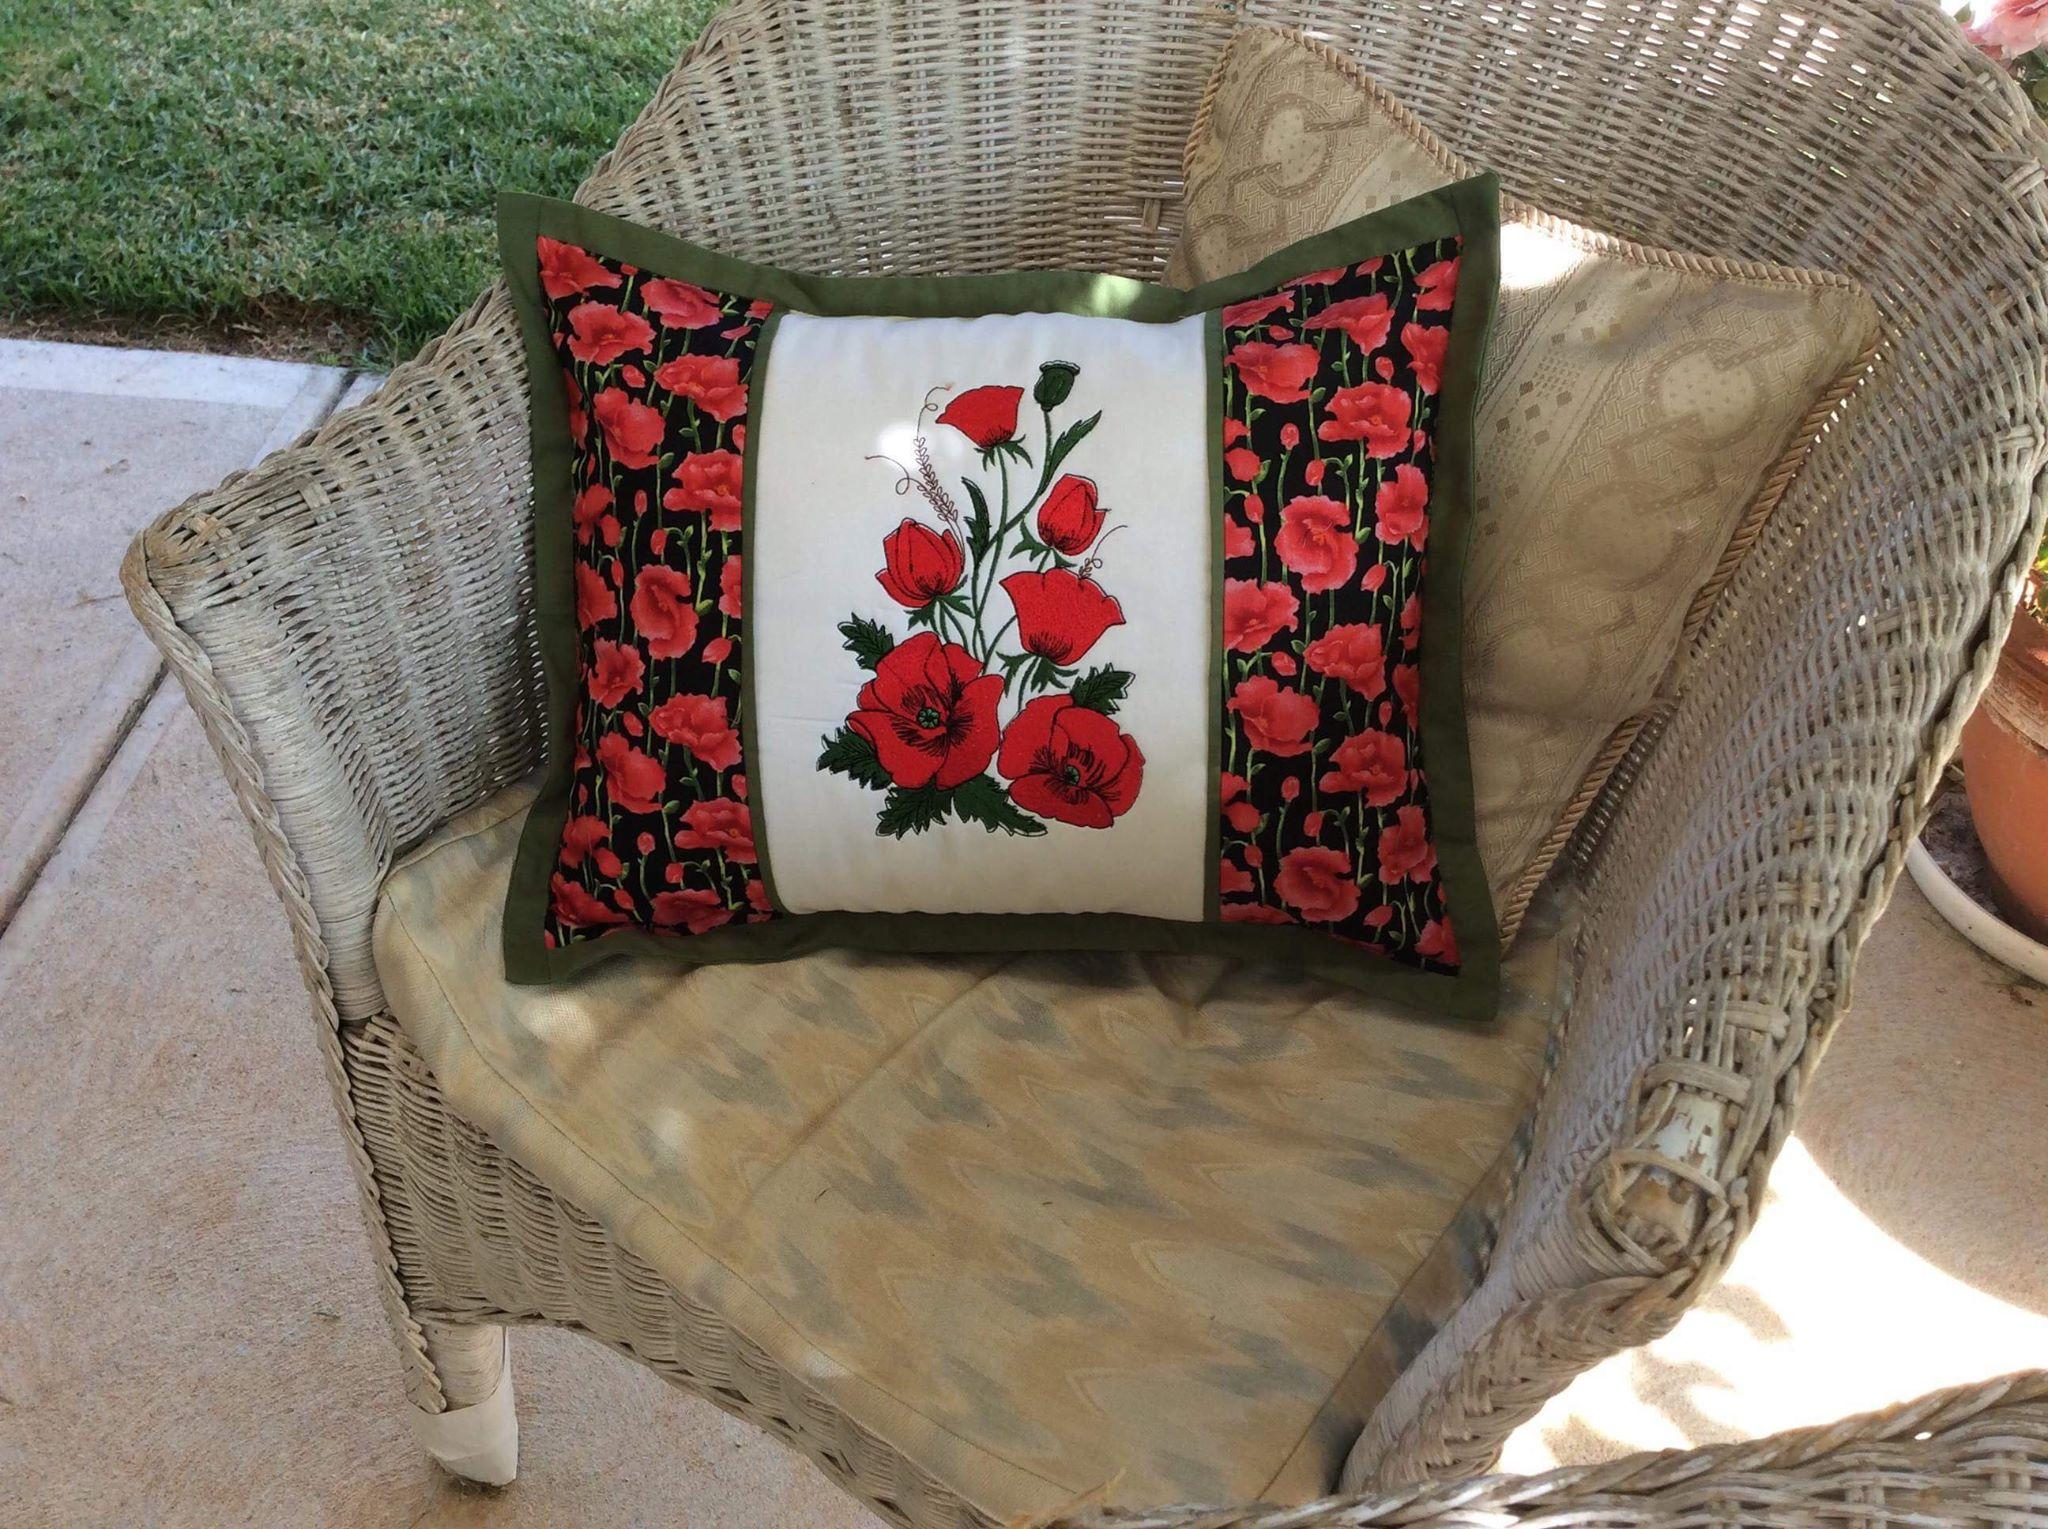 Embroidered cushion with red poppies design